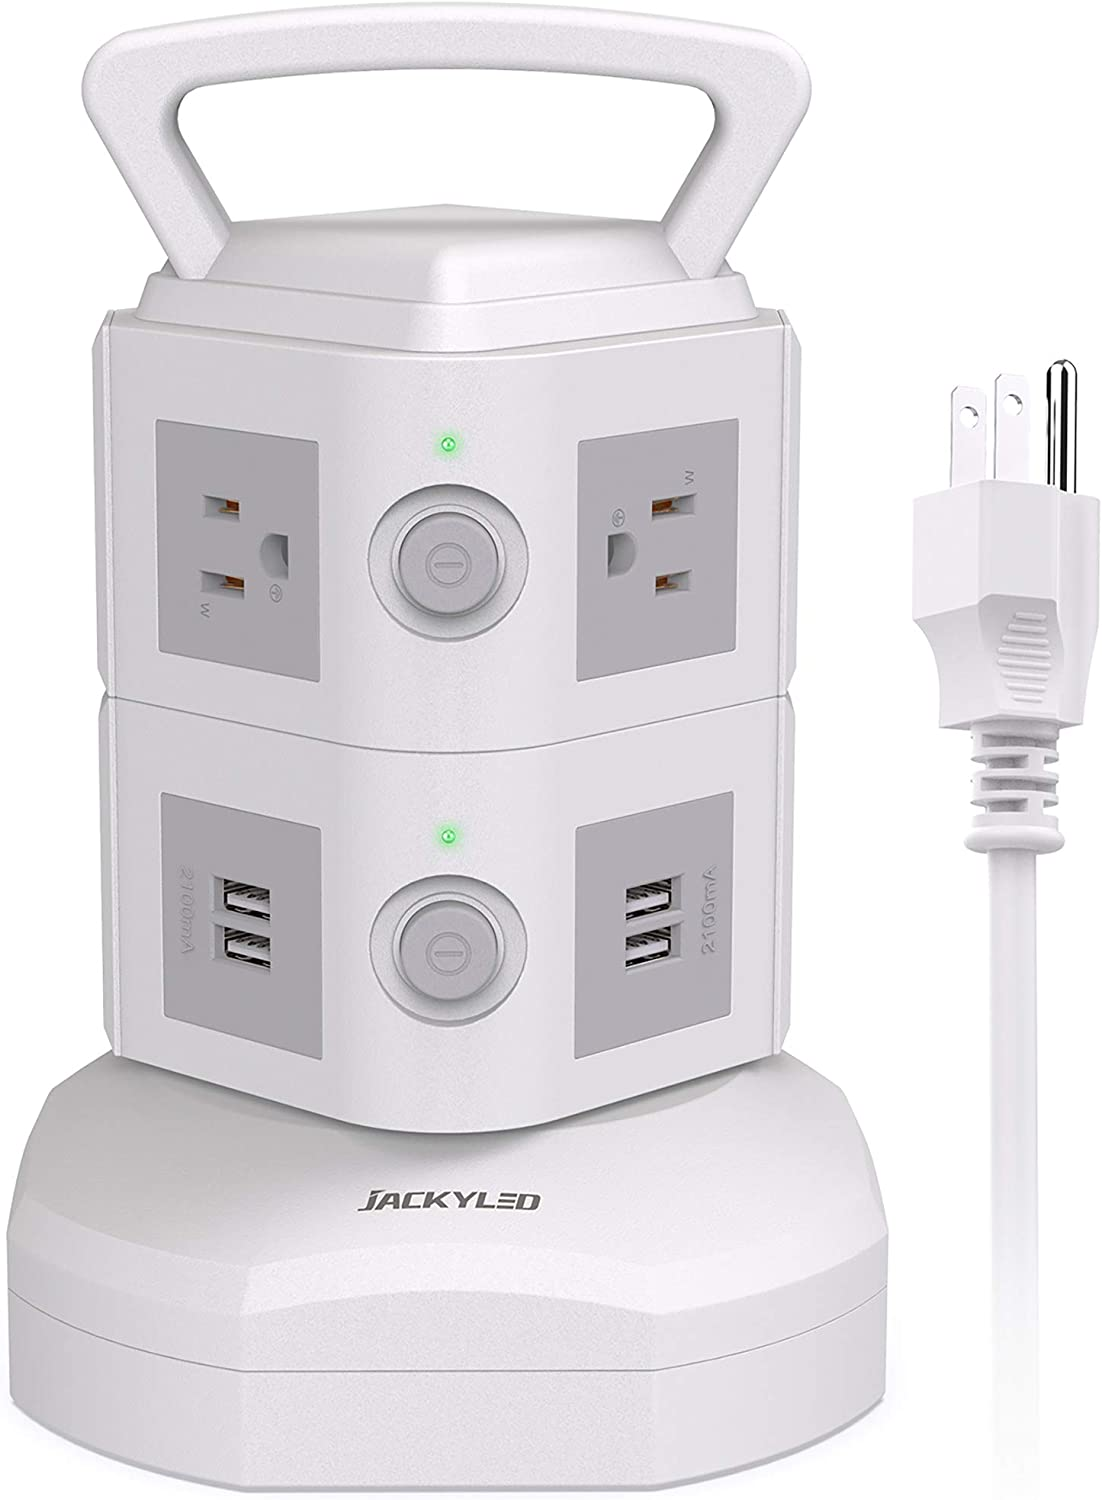 JACKYLED Power Strip Tower Surge Protector 6 AC Outlets and 4 USB Ports Electric Charging Station with 6.5ft Heavy Duty Extension Cord for Home Office Dorm Computer White Grey